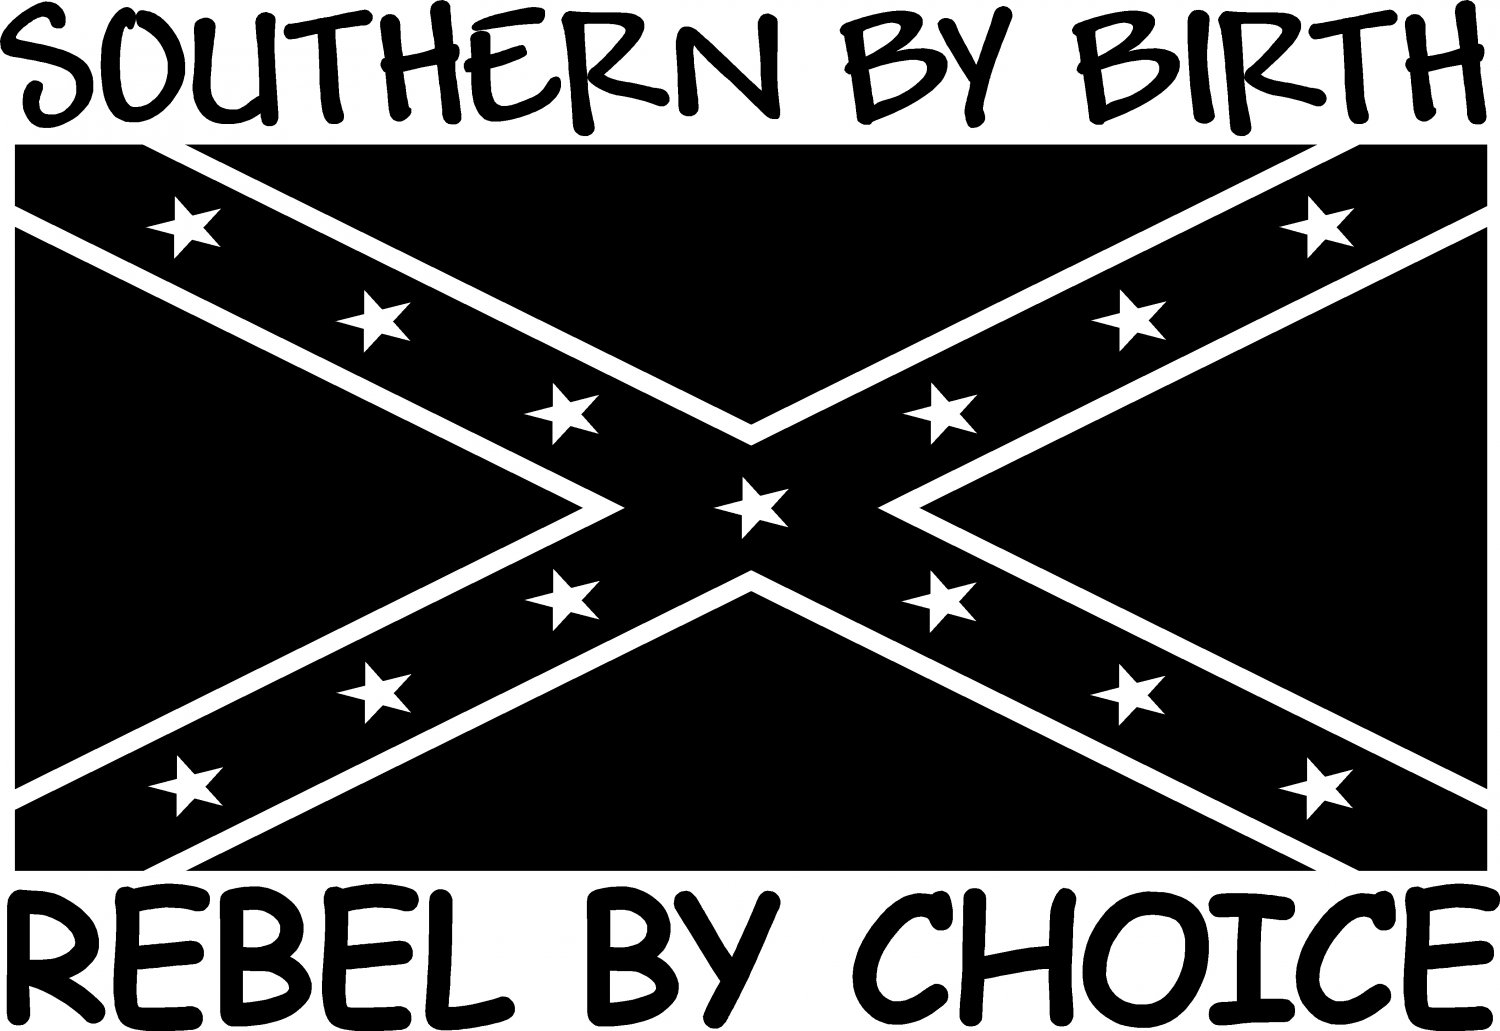 REBEL SOUTHERN BY BIRTH REBEL BY CHOICE VINYL DECAL STICKER